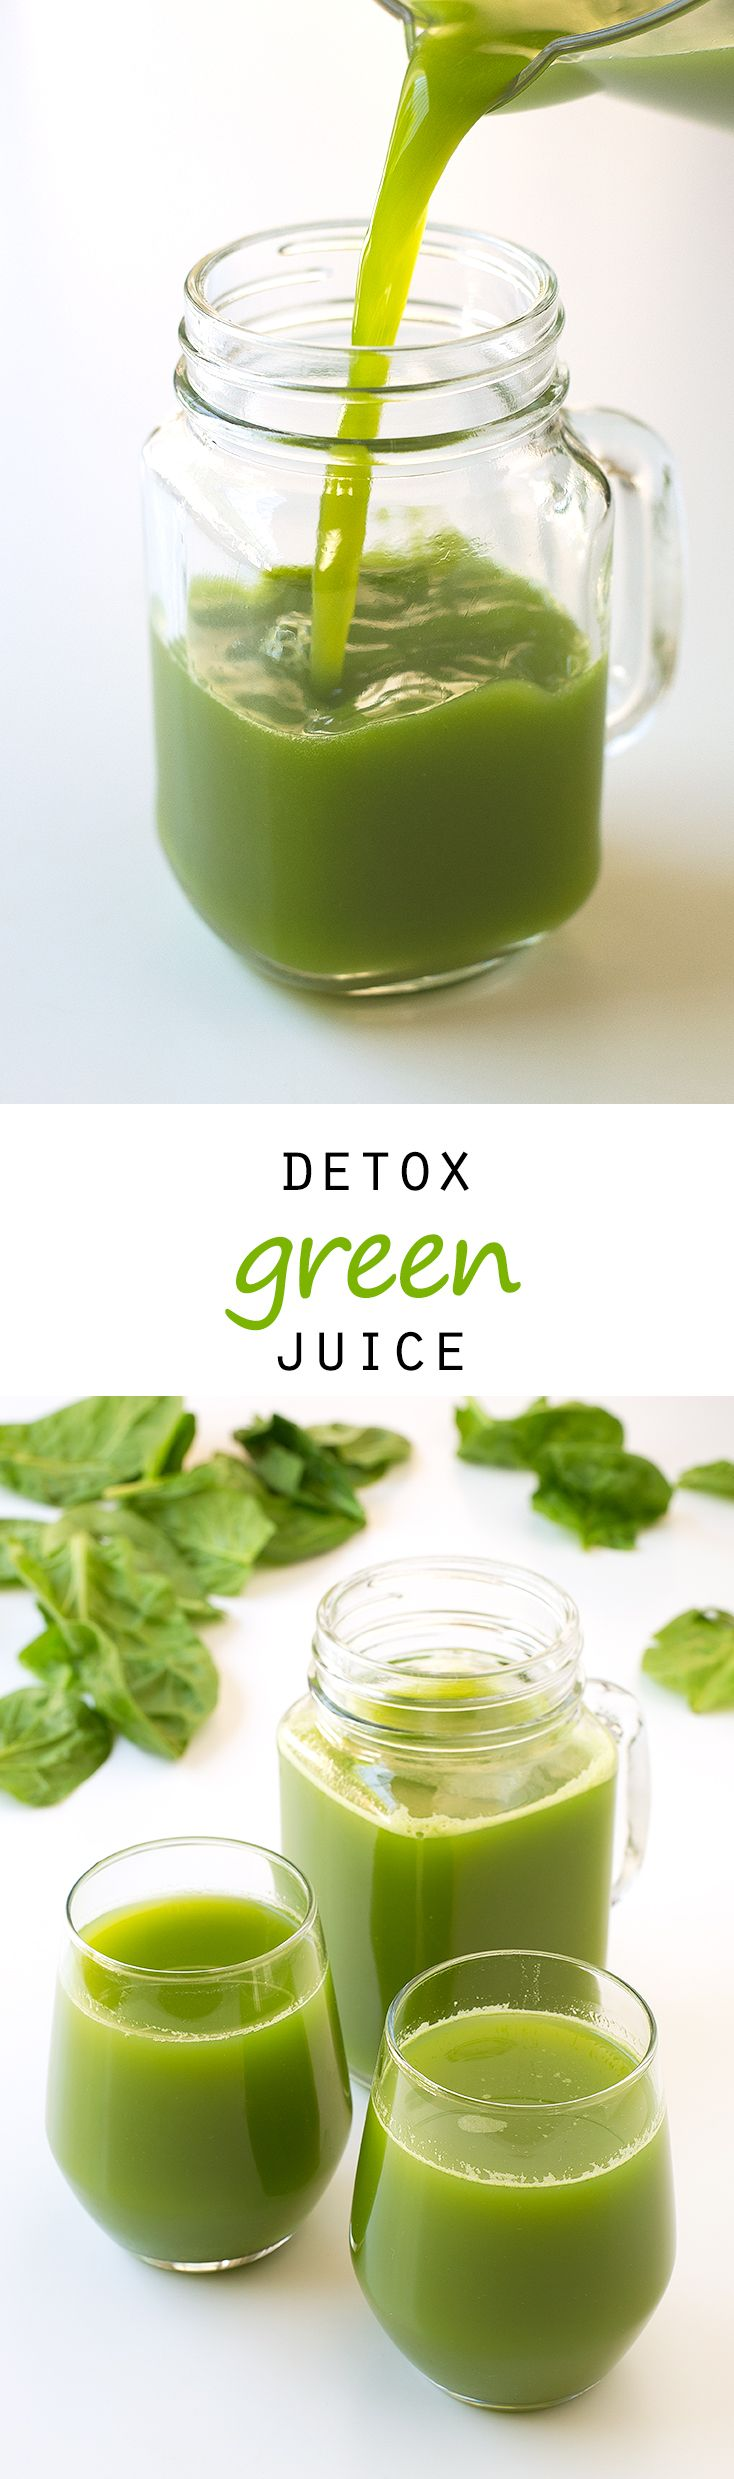 (Vegan and GF) Detox Green Juice #vegan #glutenfree (Green Apple Recipes)